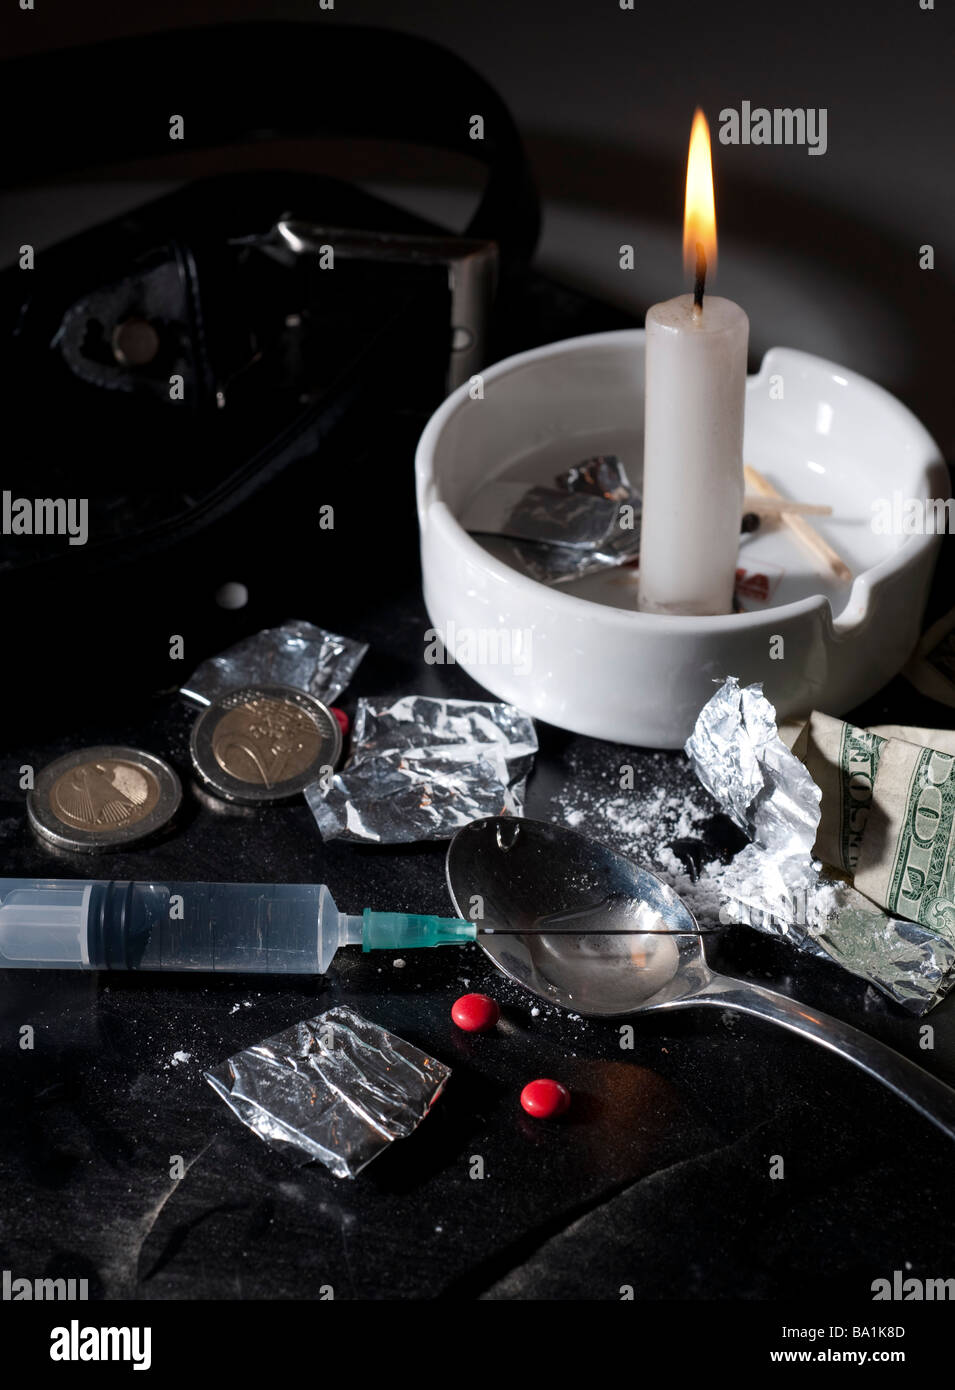 Drug abuse concept Heroin shoot up tools and drugs and money - Stock Image